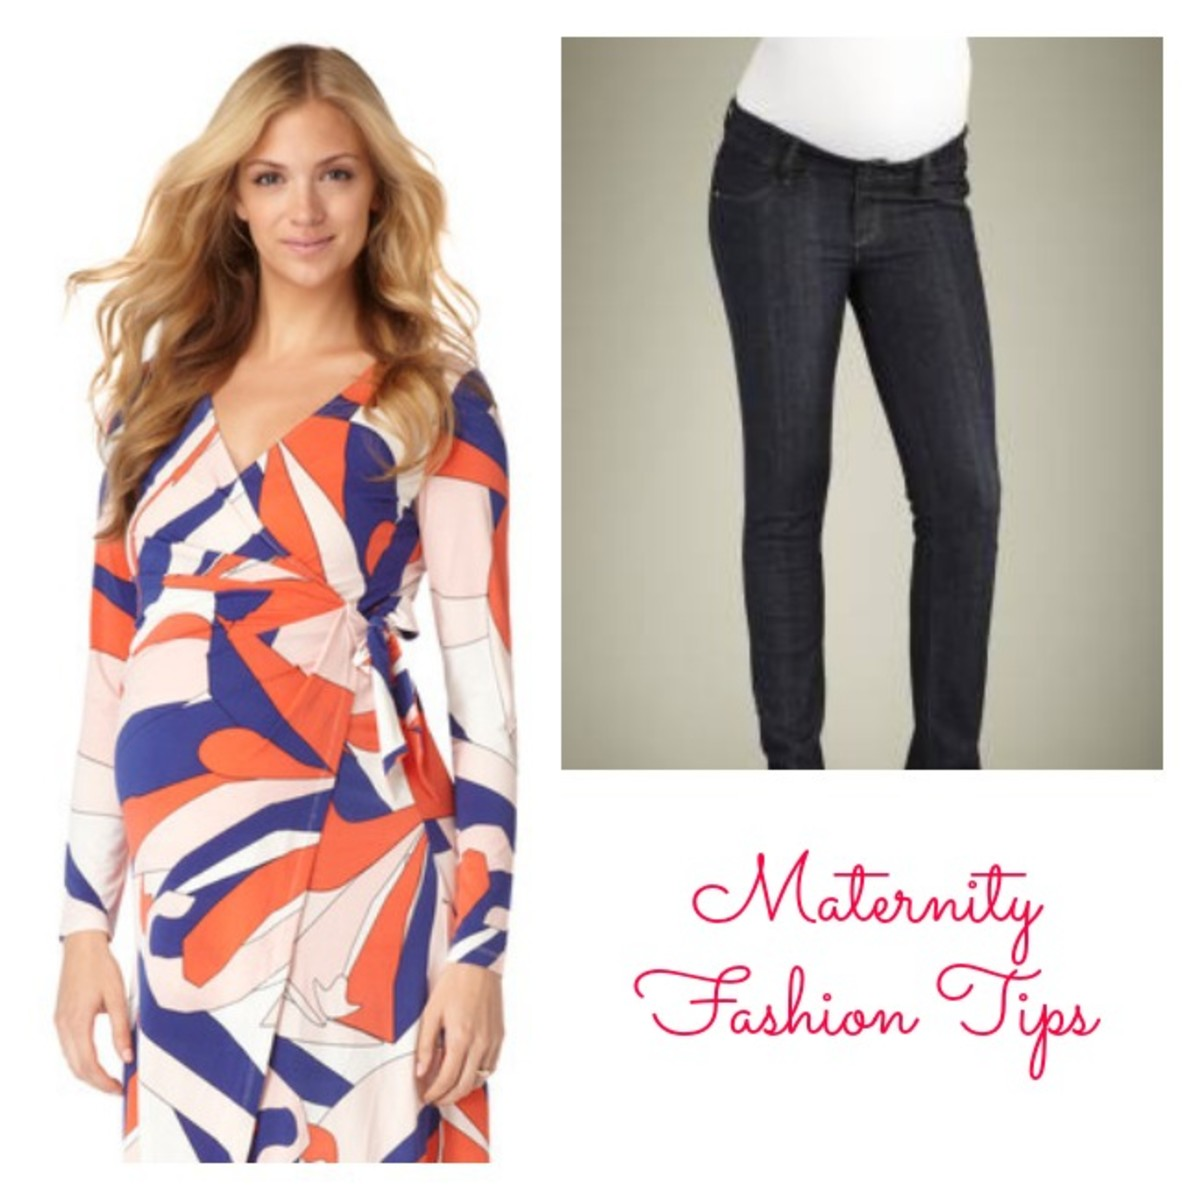 Wondering when to buy maternity clothes? Discover when I choose to make the jump to maternity wear plus some tips for getting fashionable clothes for less.